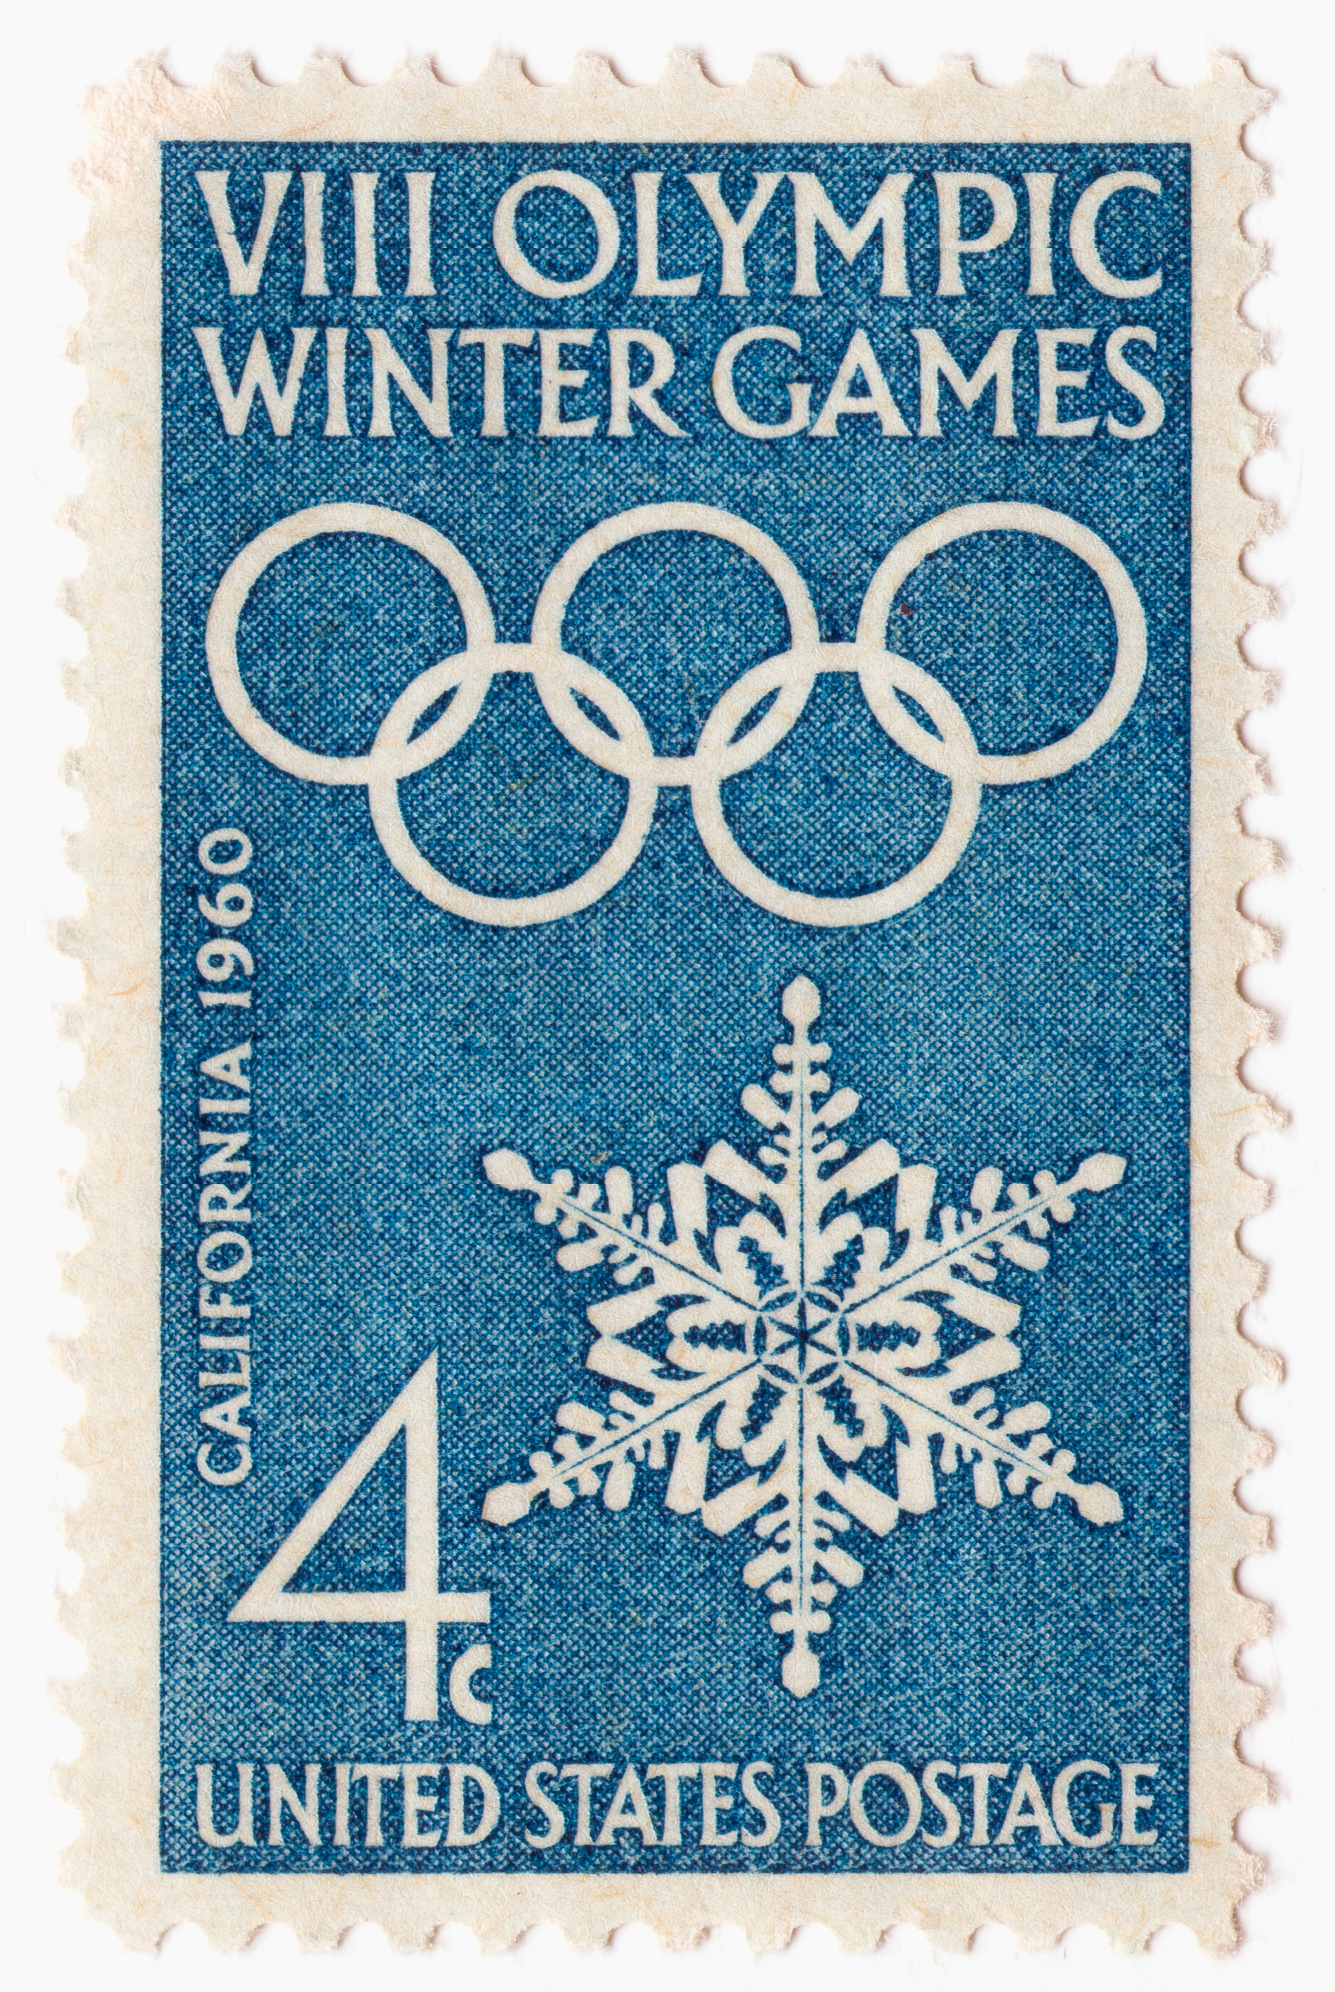 Commemoration of 1960 Winter Olympics